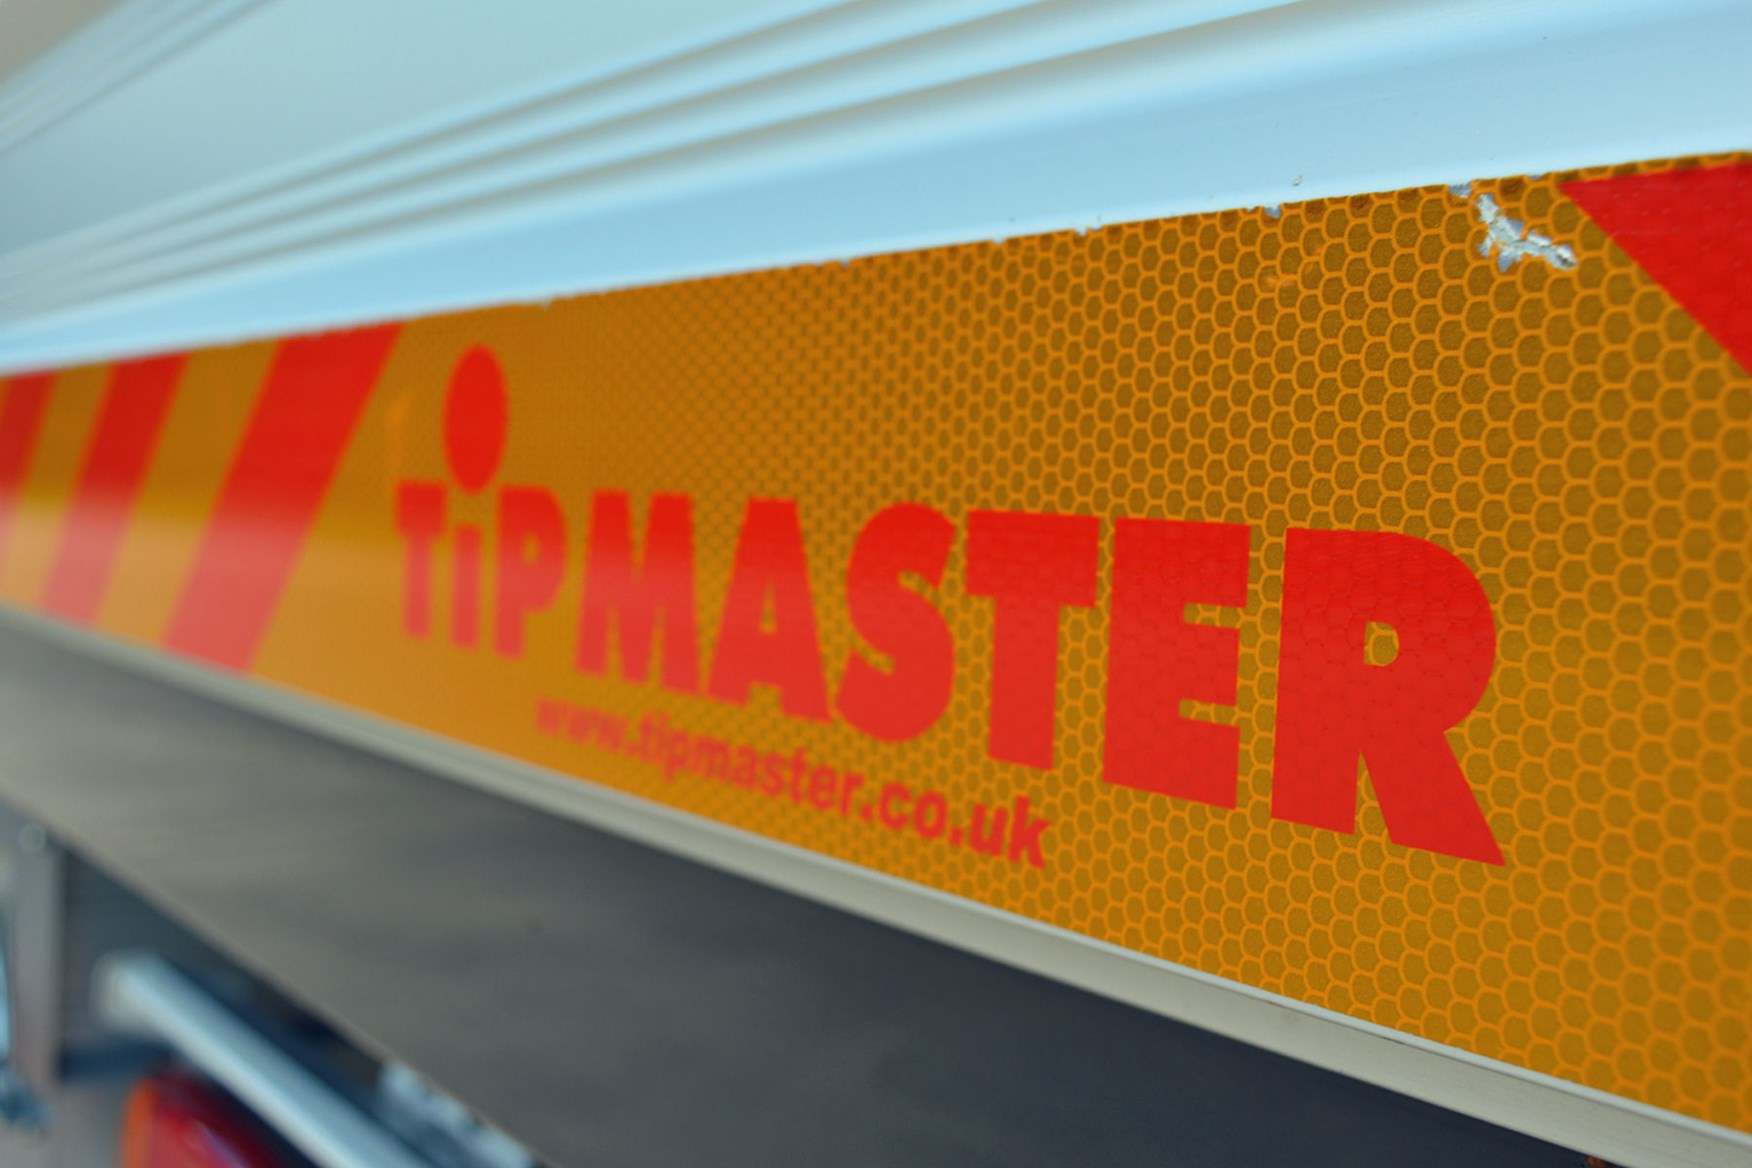 Citroen Relay 2.2 HDi Tipper review - Tipmaster logo